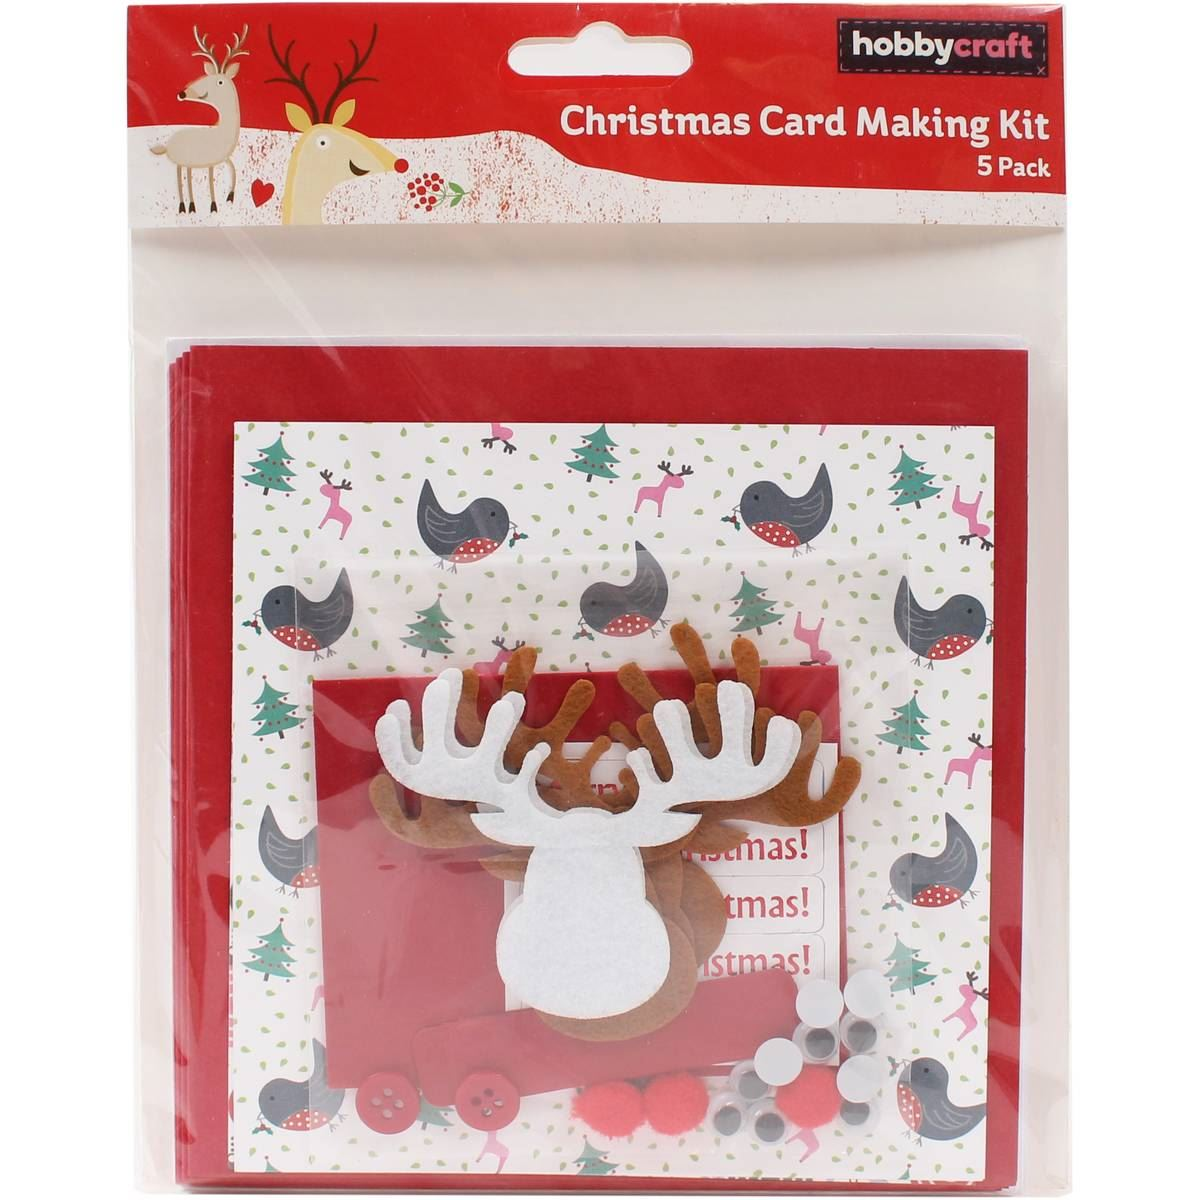 Hobbycraft christmas card making kit assorted designs for Craft supplies for card making